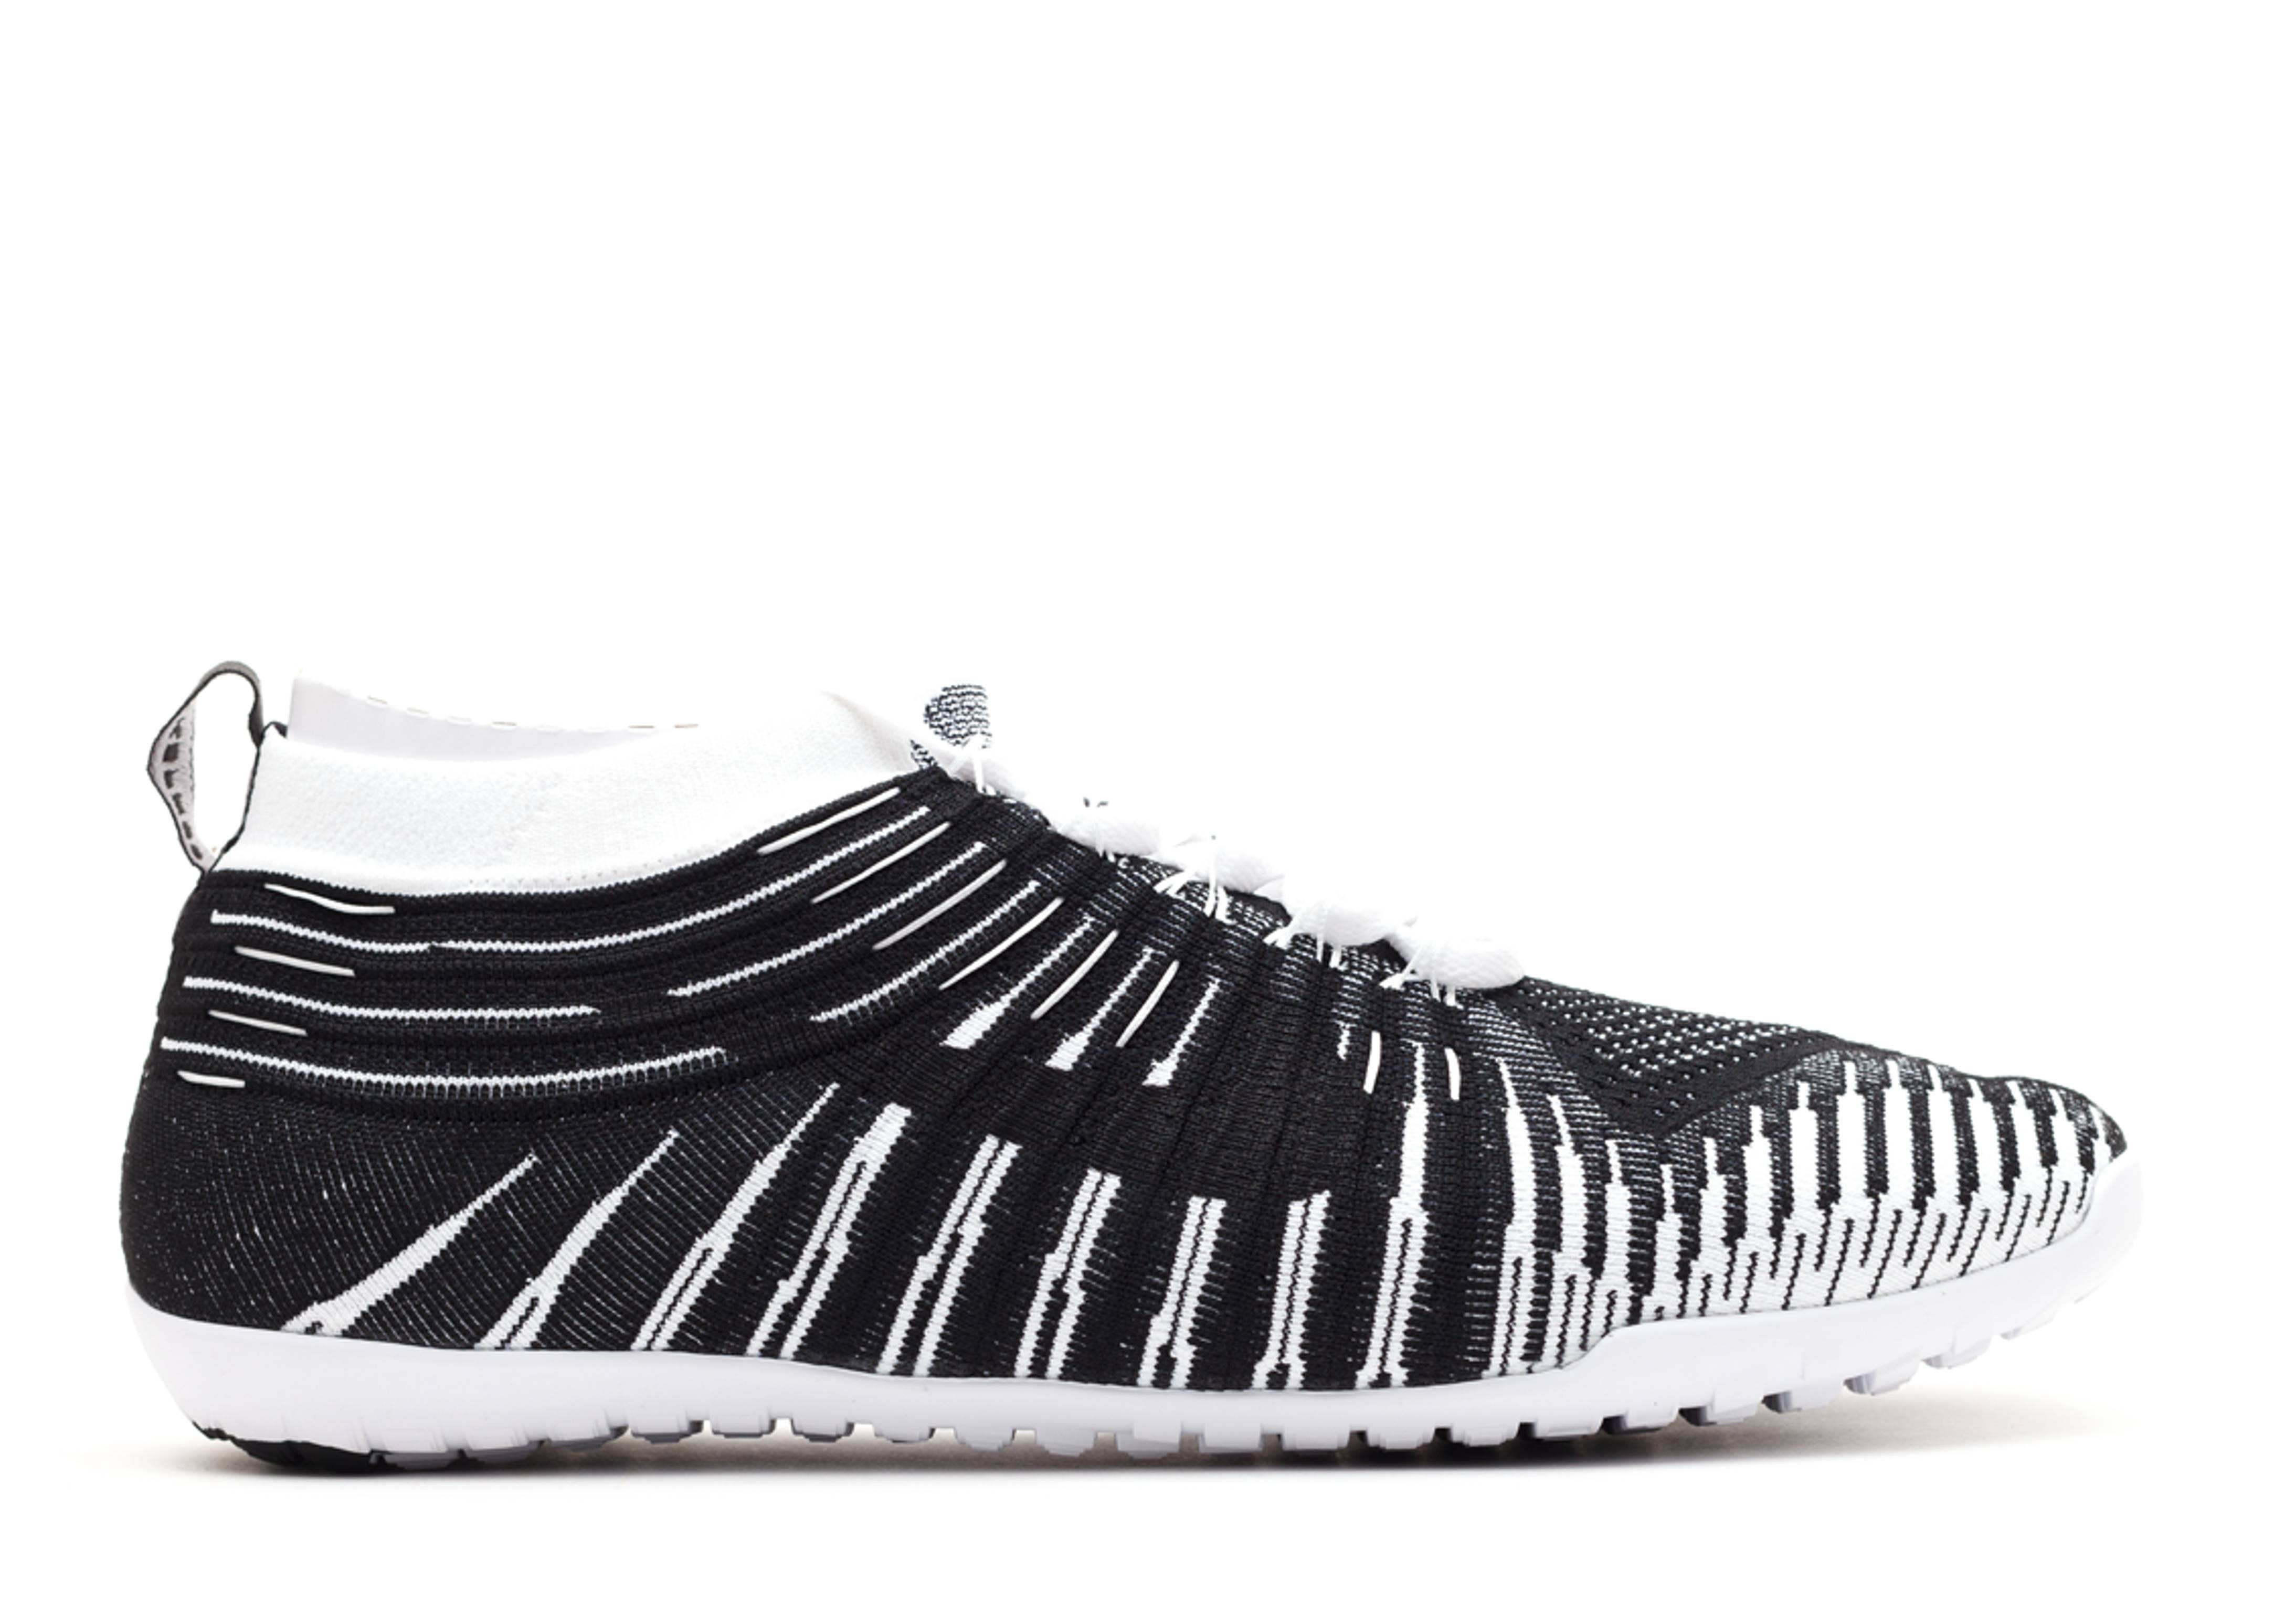 check out 60aa8 c6d5d ... new zealand nike free hyperfeel run sp nyc e05e0 971c5